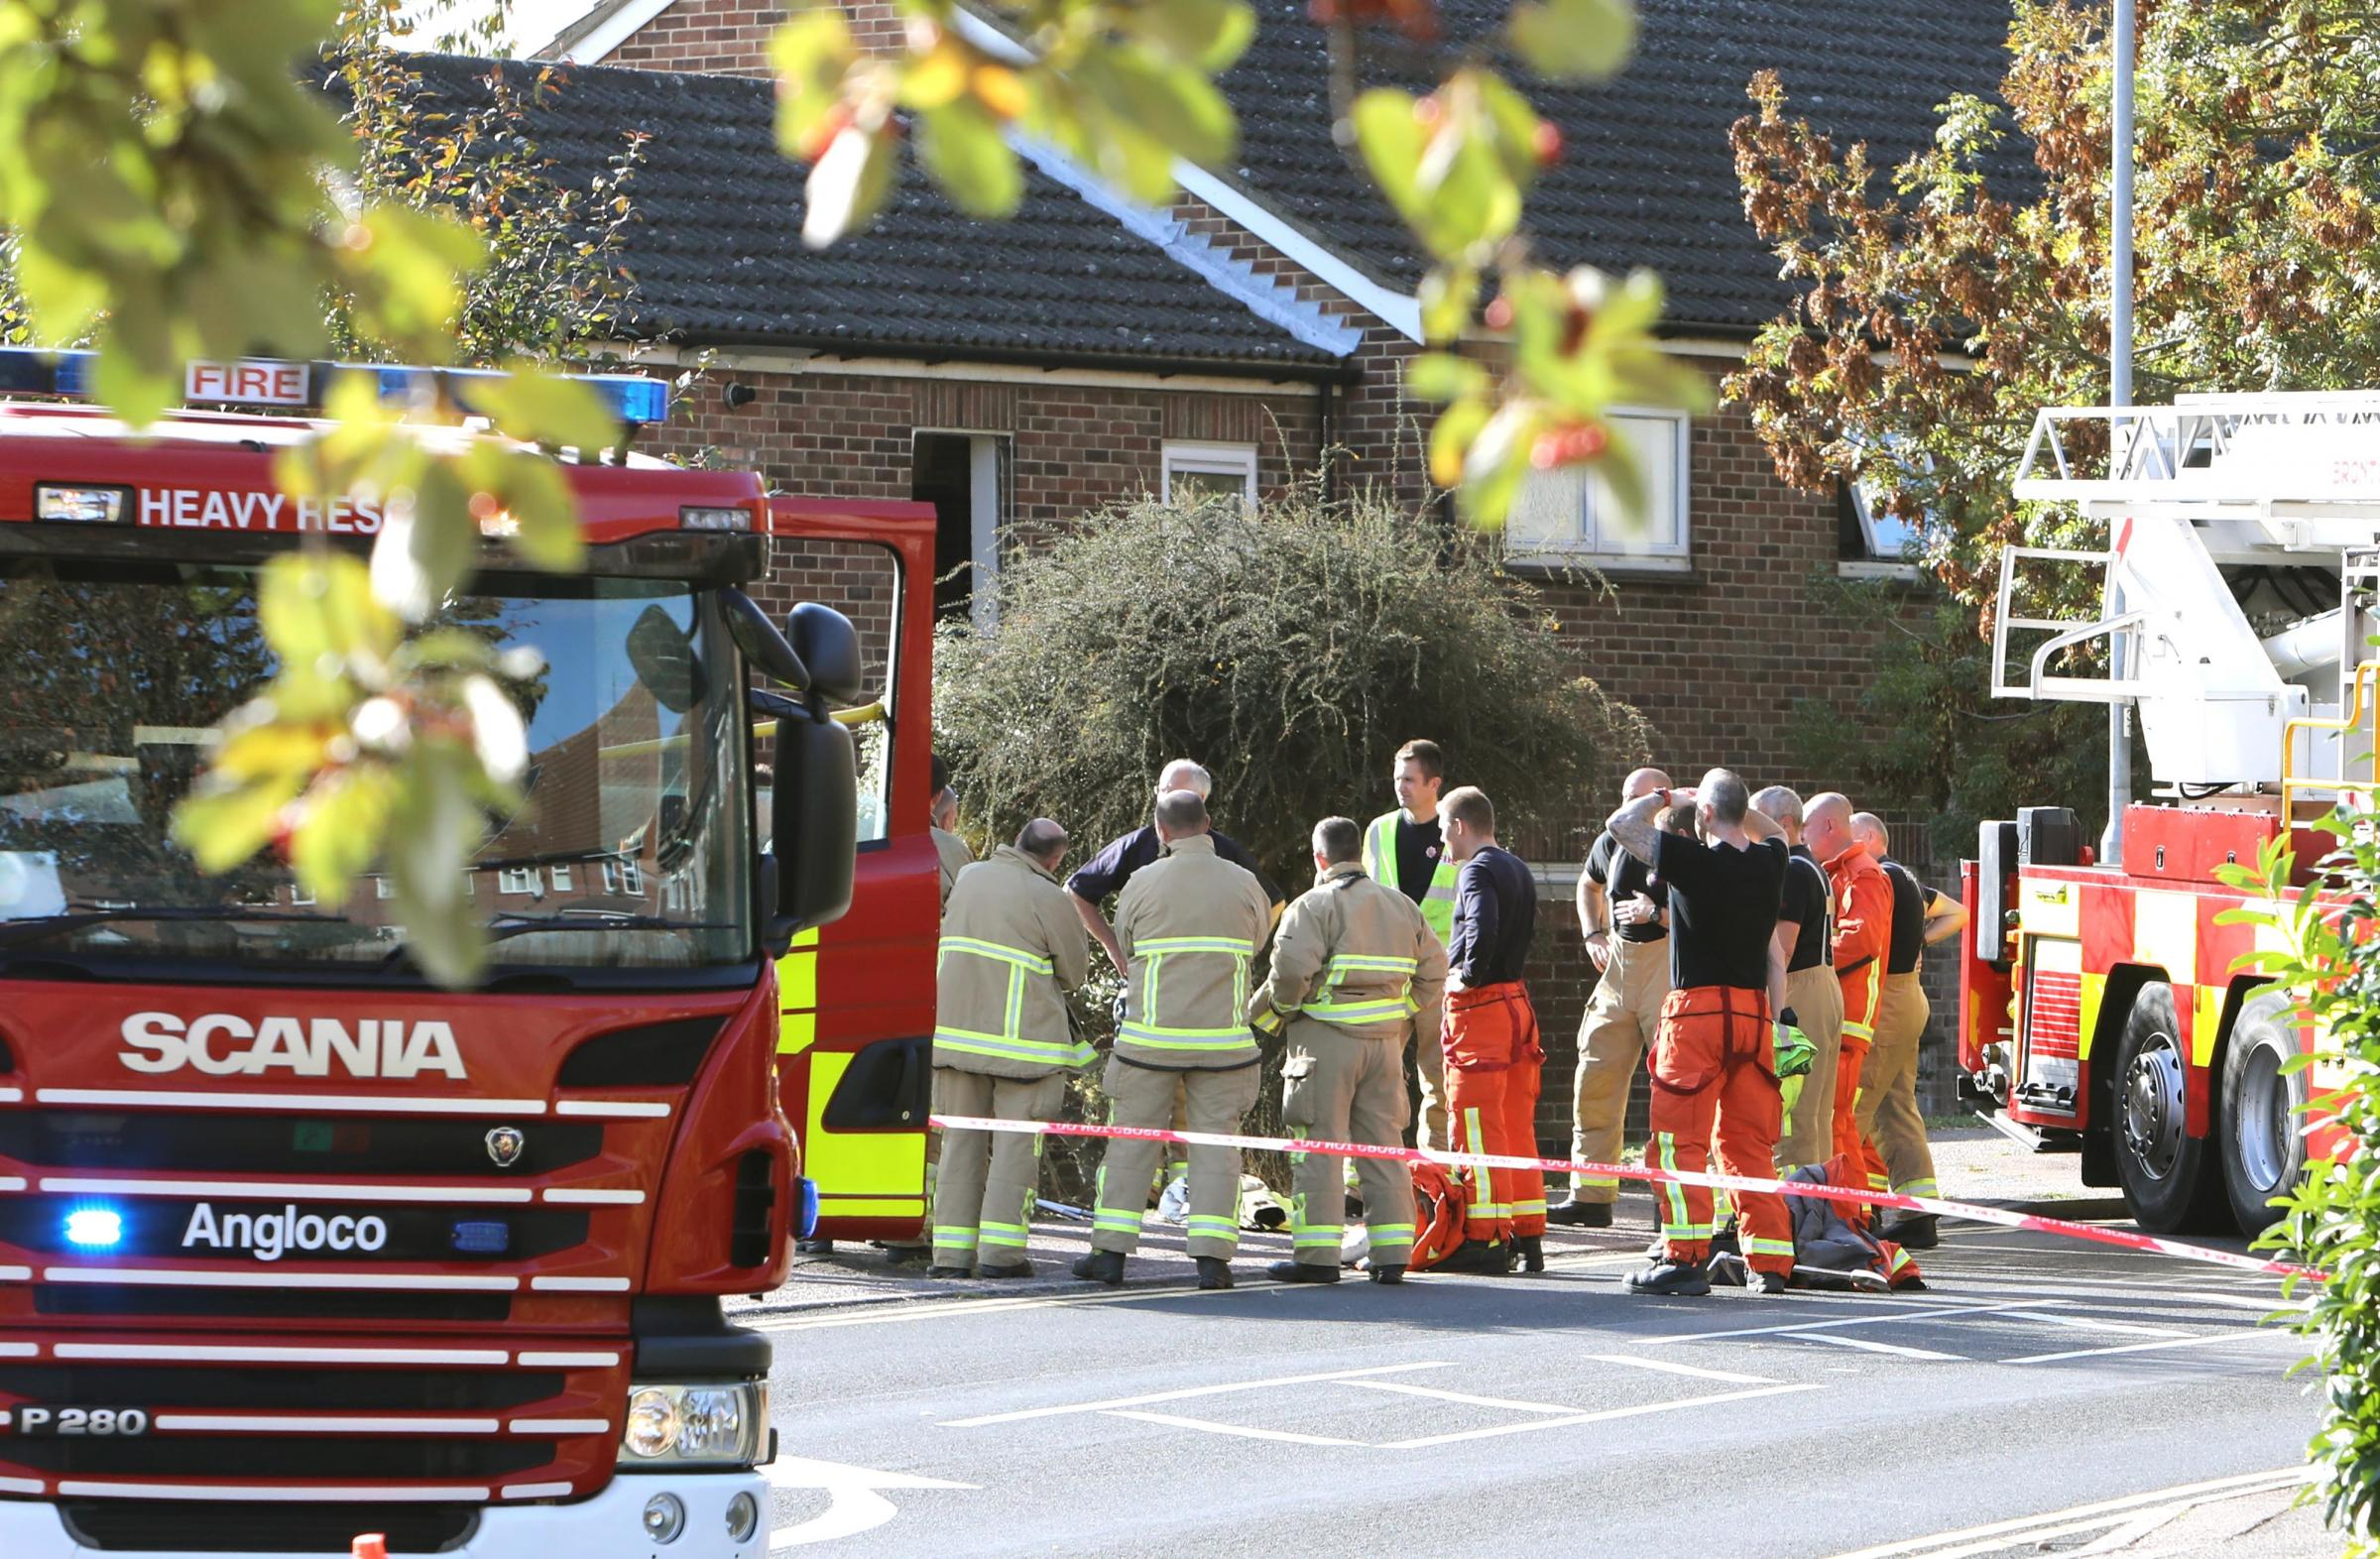 Concerns - Fire Bridge Union members have raised fears over the fire and rescue plan